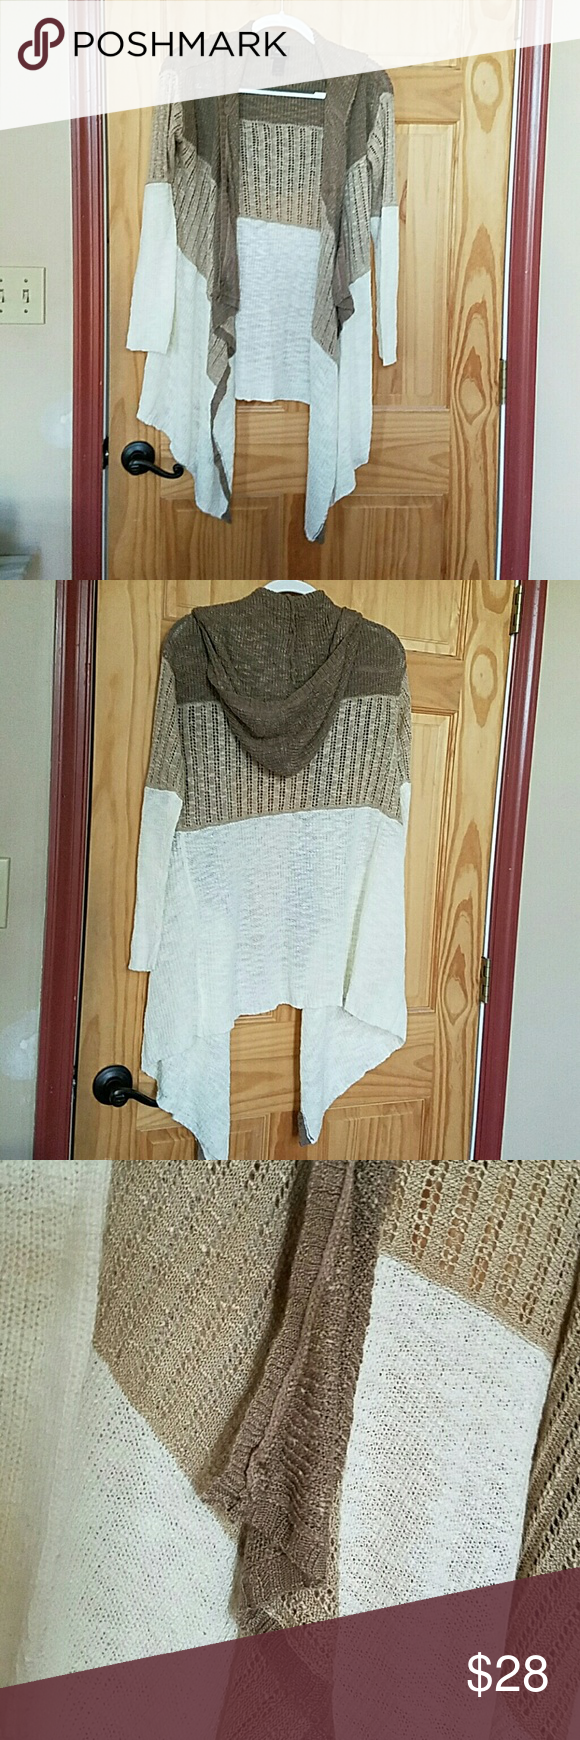 Hooded sweater Beautiful cascading cream beige and light brown ...